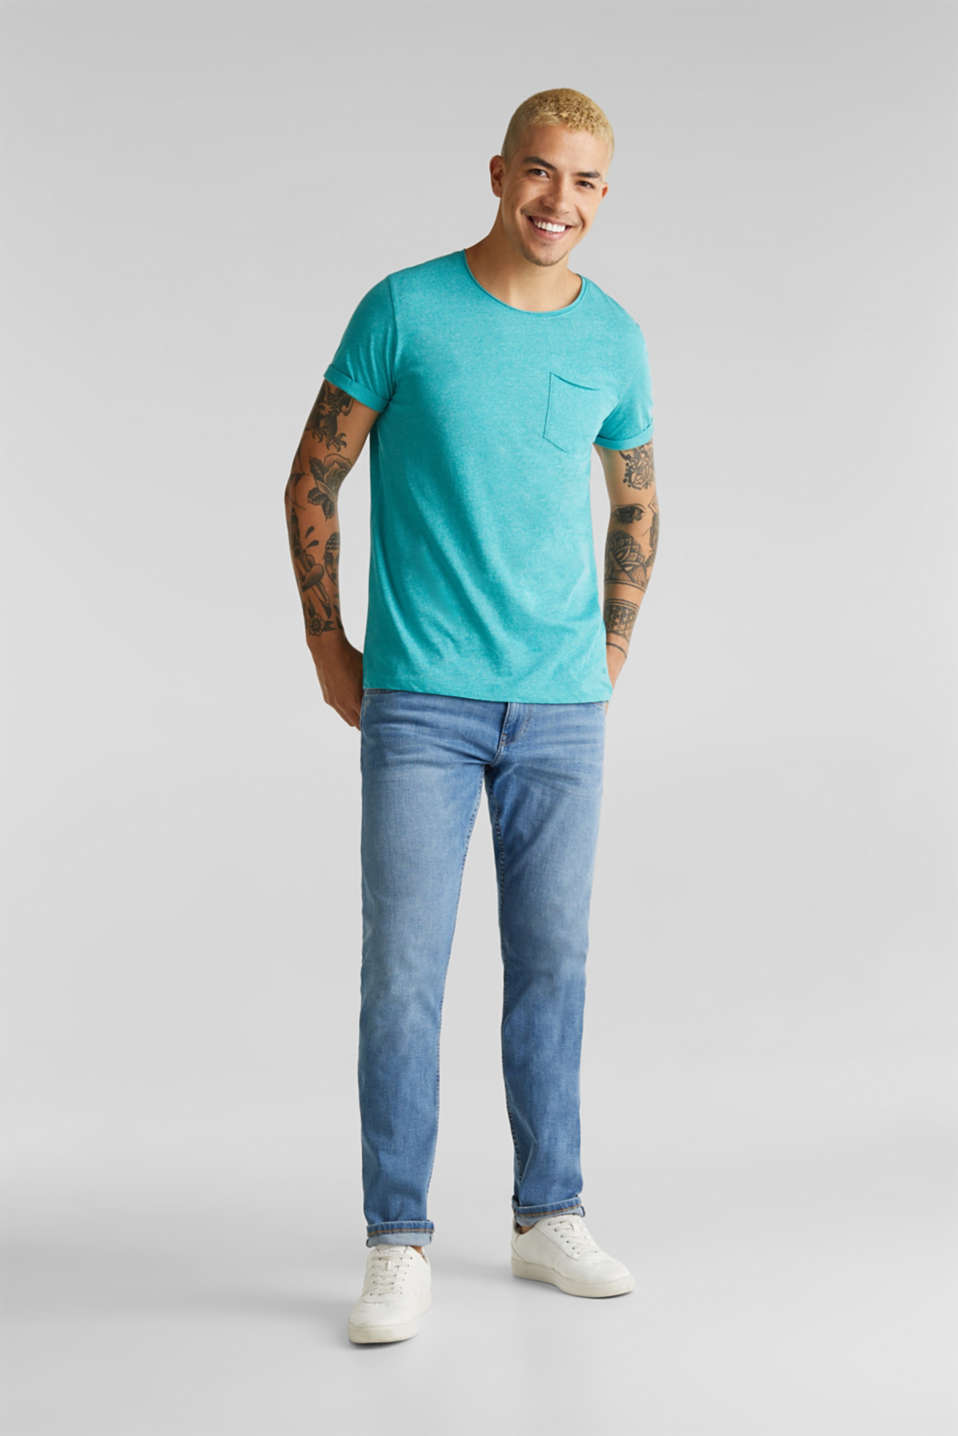 Jersey T-shirt in a casual look, LIGHT AQUA GREEN 5, detail image number 2